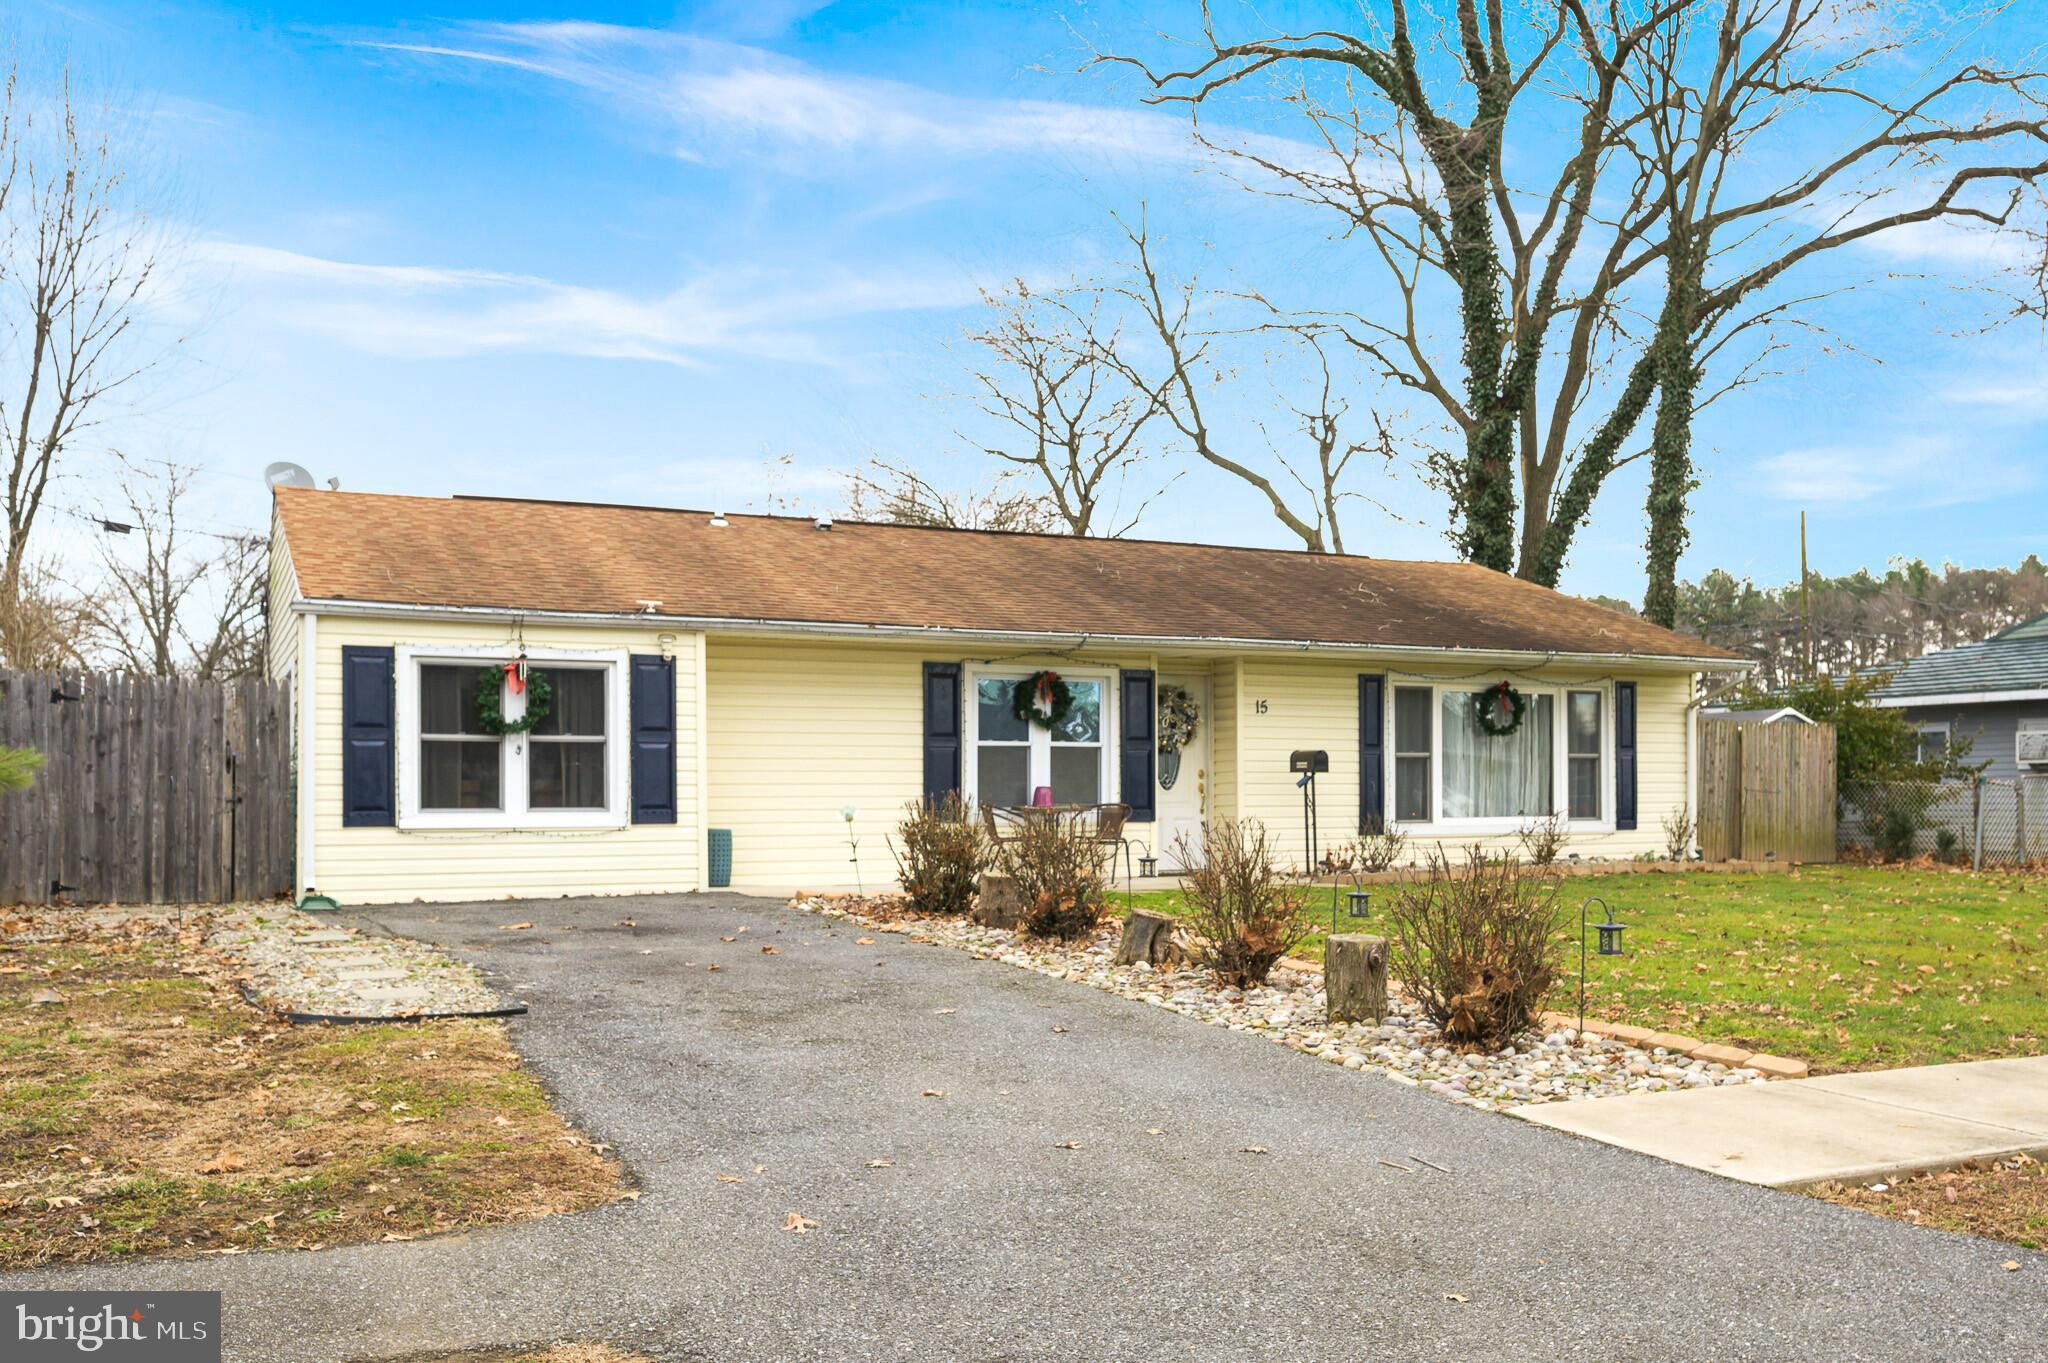 Welcome to 15 Kullen Drive, Newark DE.  This 4 bedroom 2 bath home has been recently updated and is